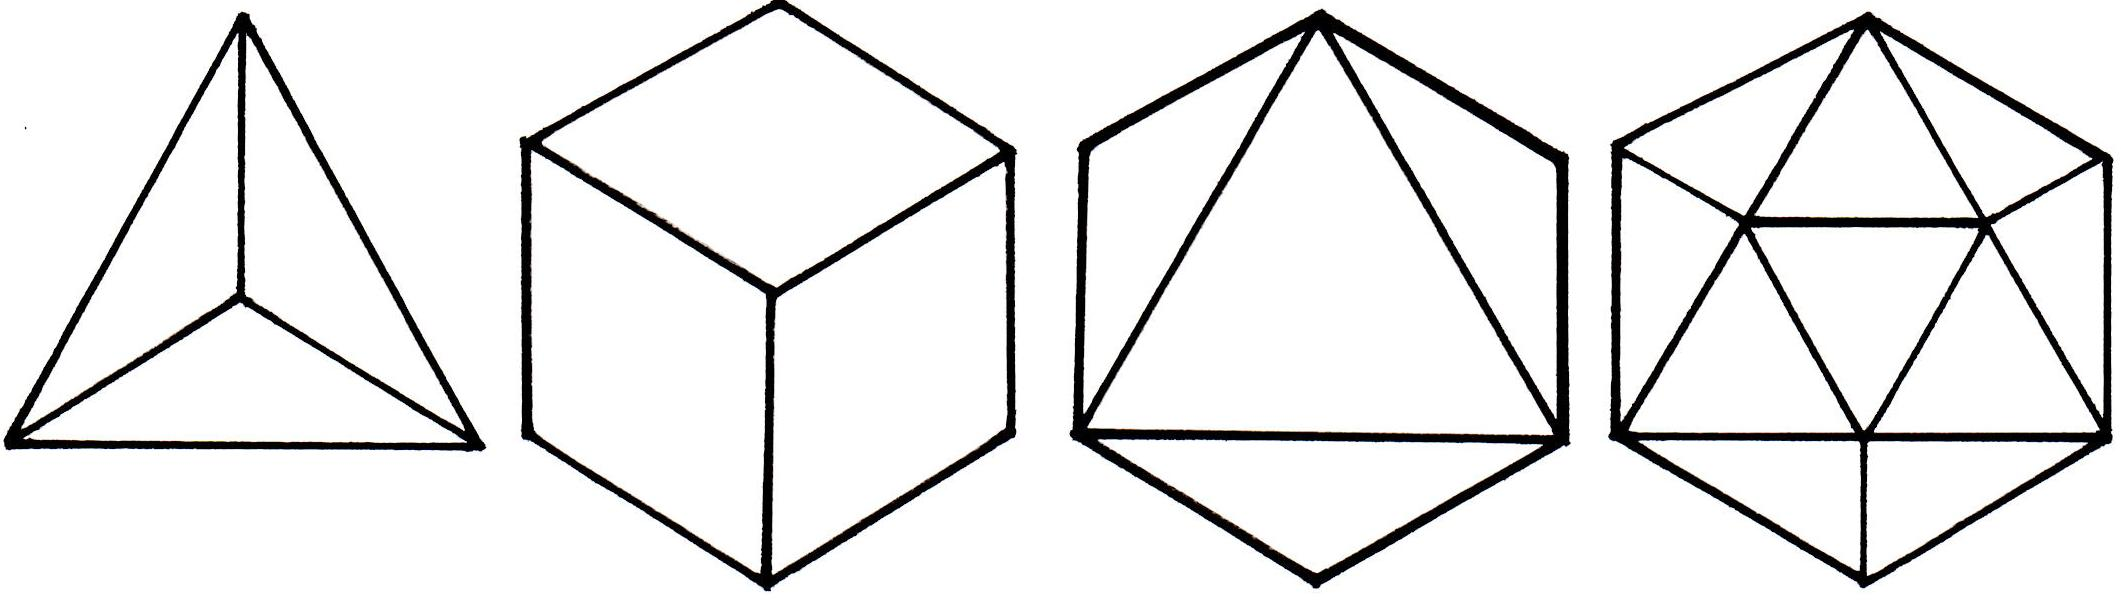 Symbolism The Platonic Solids Inkspiration